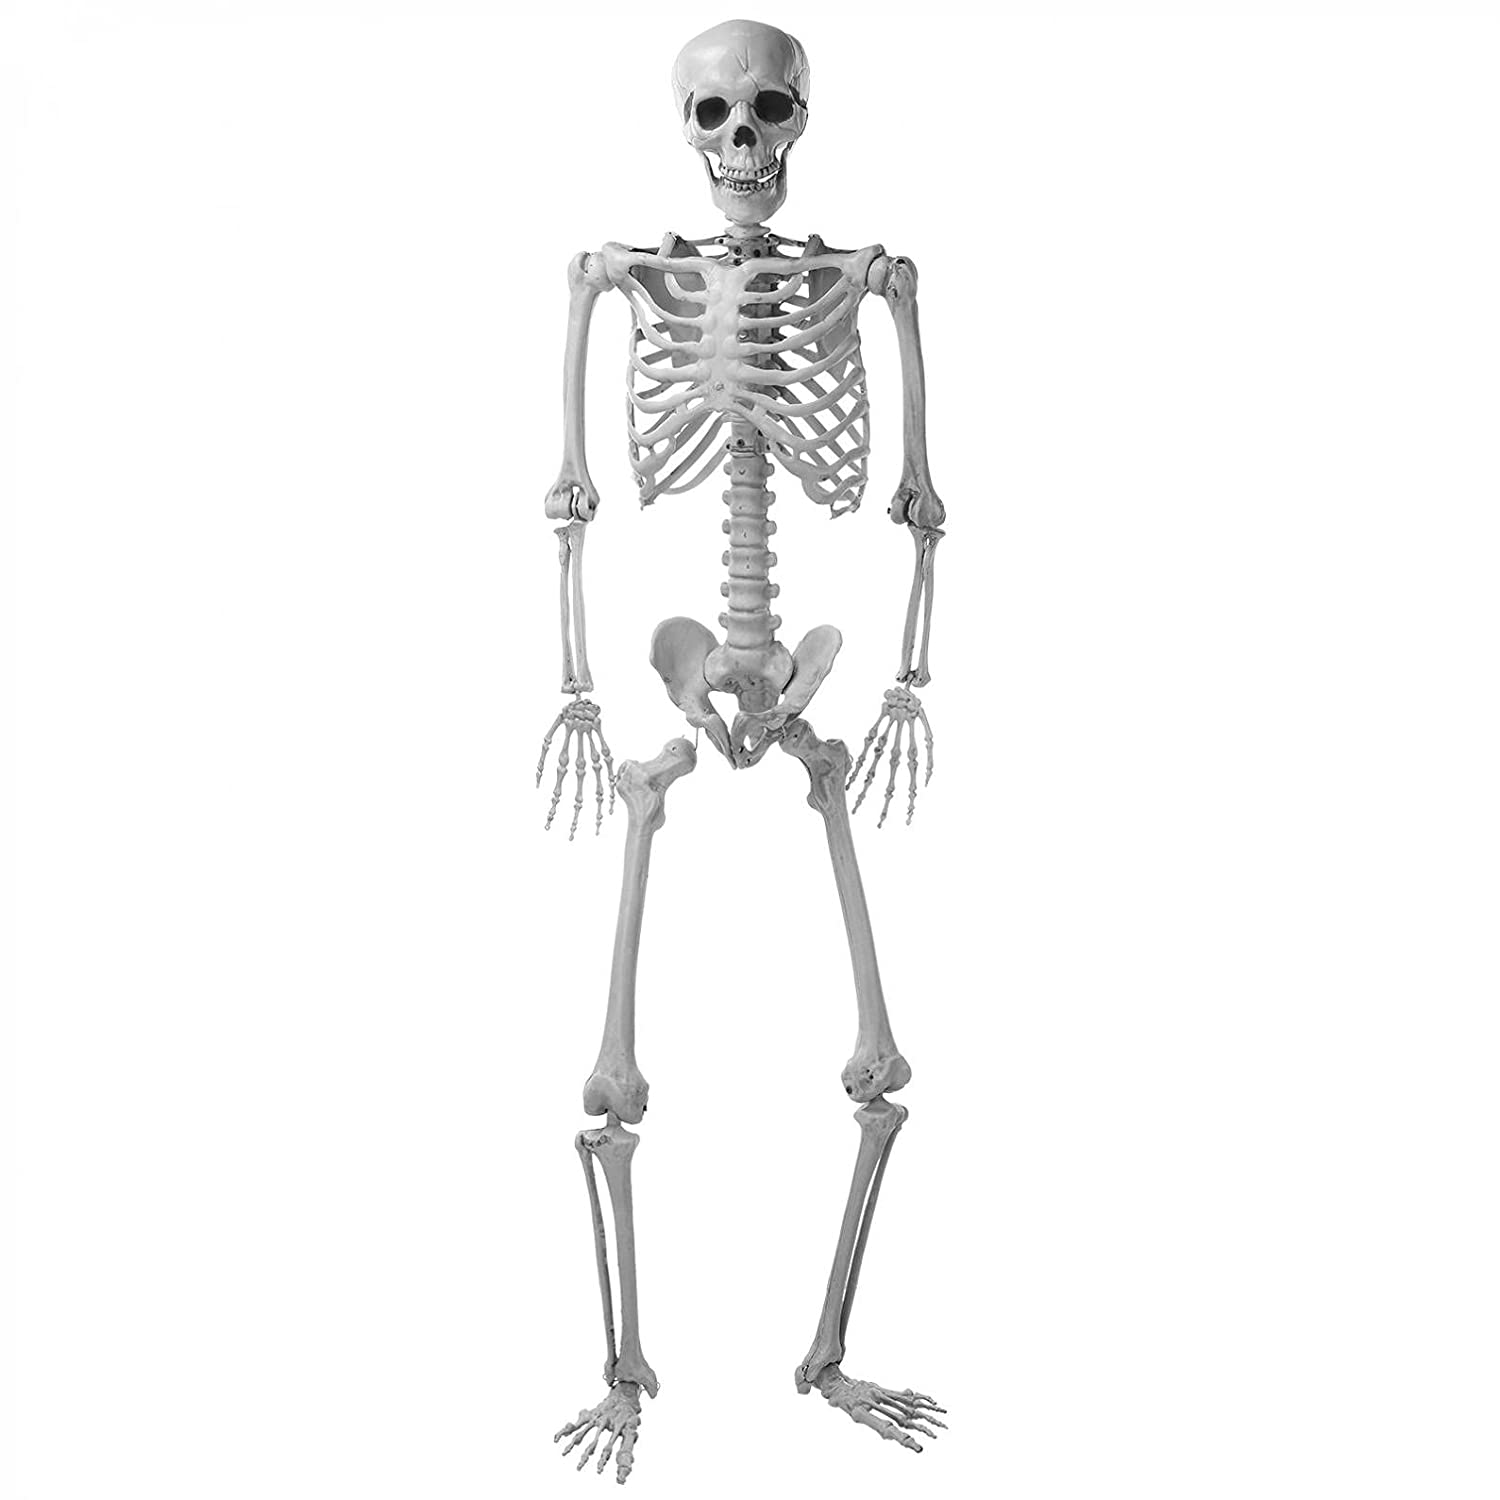 Jomstar 65Inch Max 88% OFF Full Size D Skeleton Halloween Direct stock discount